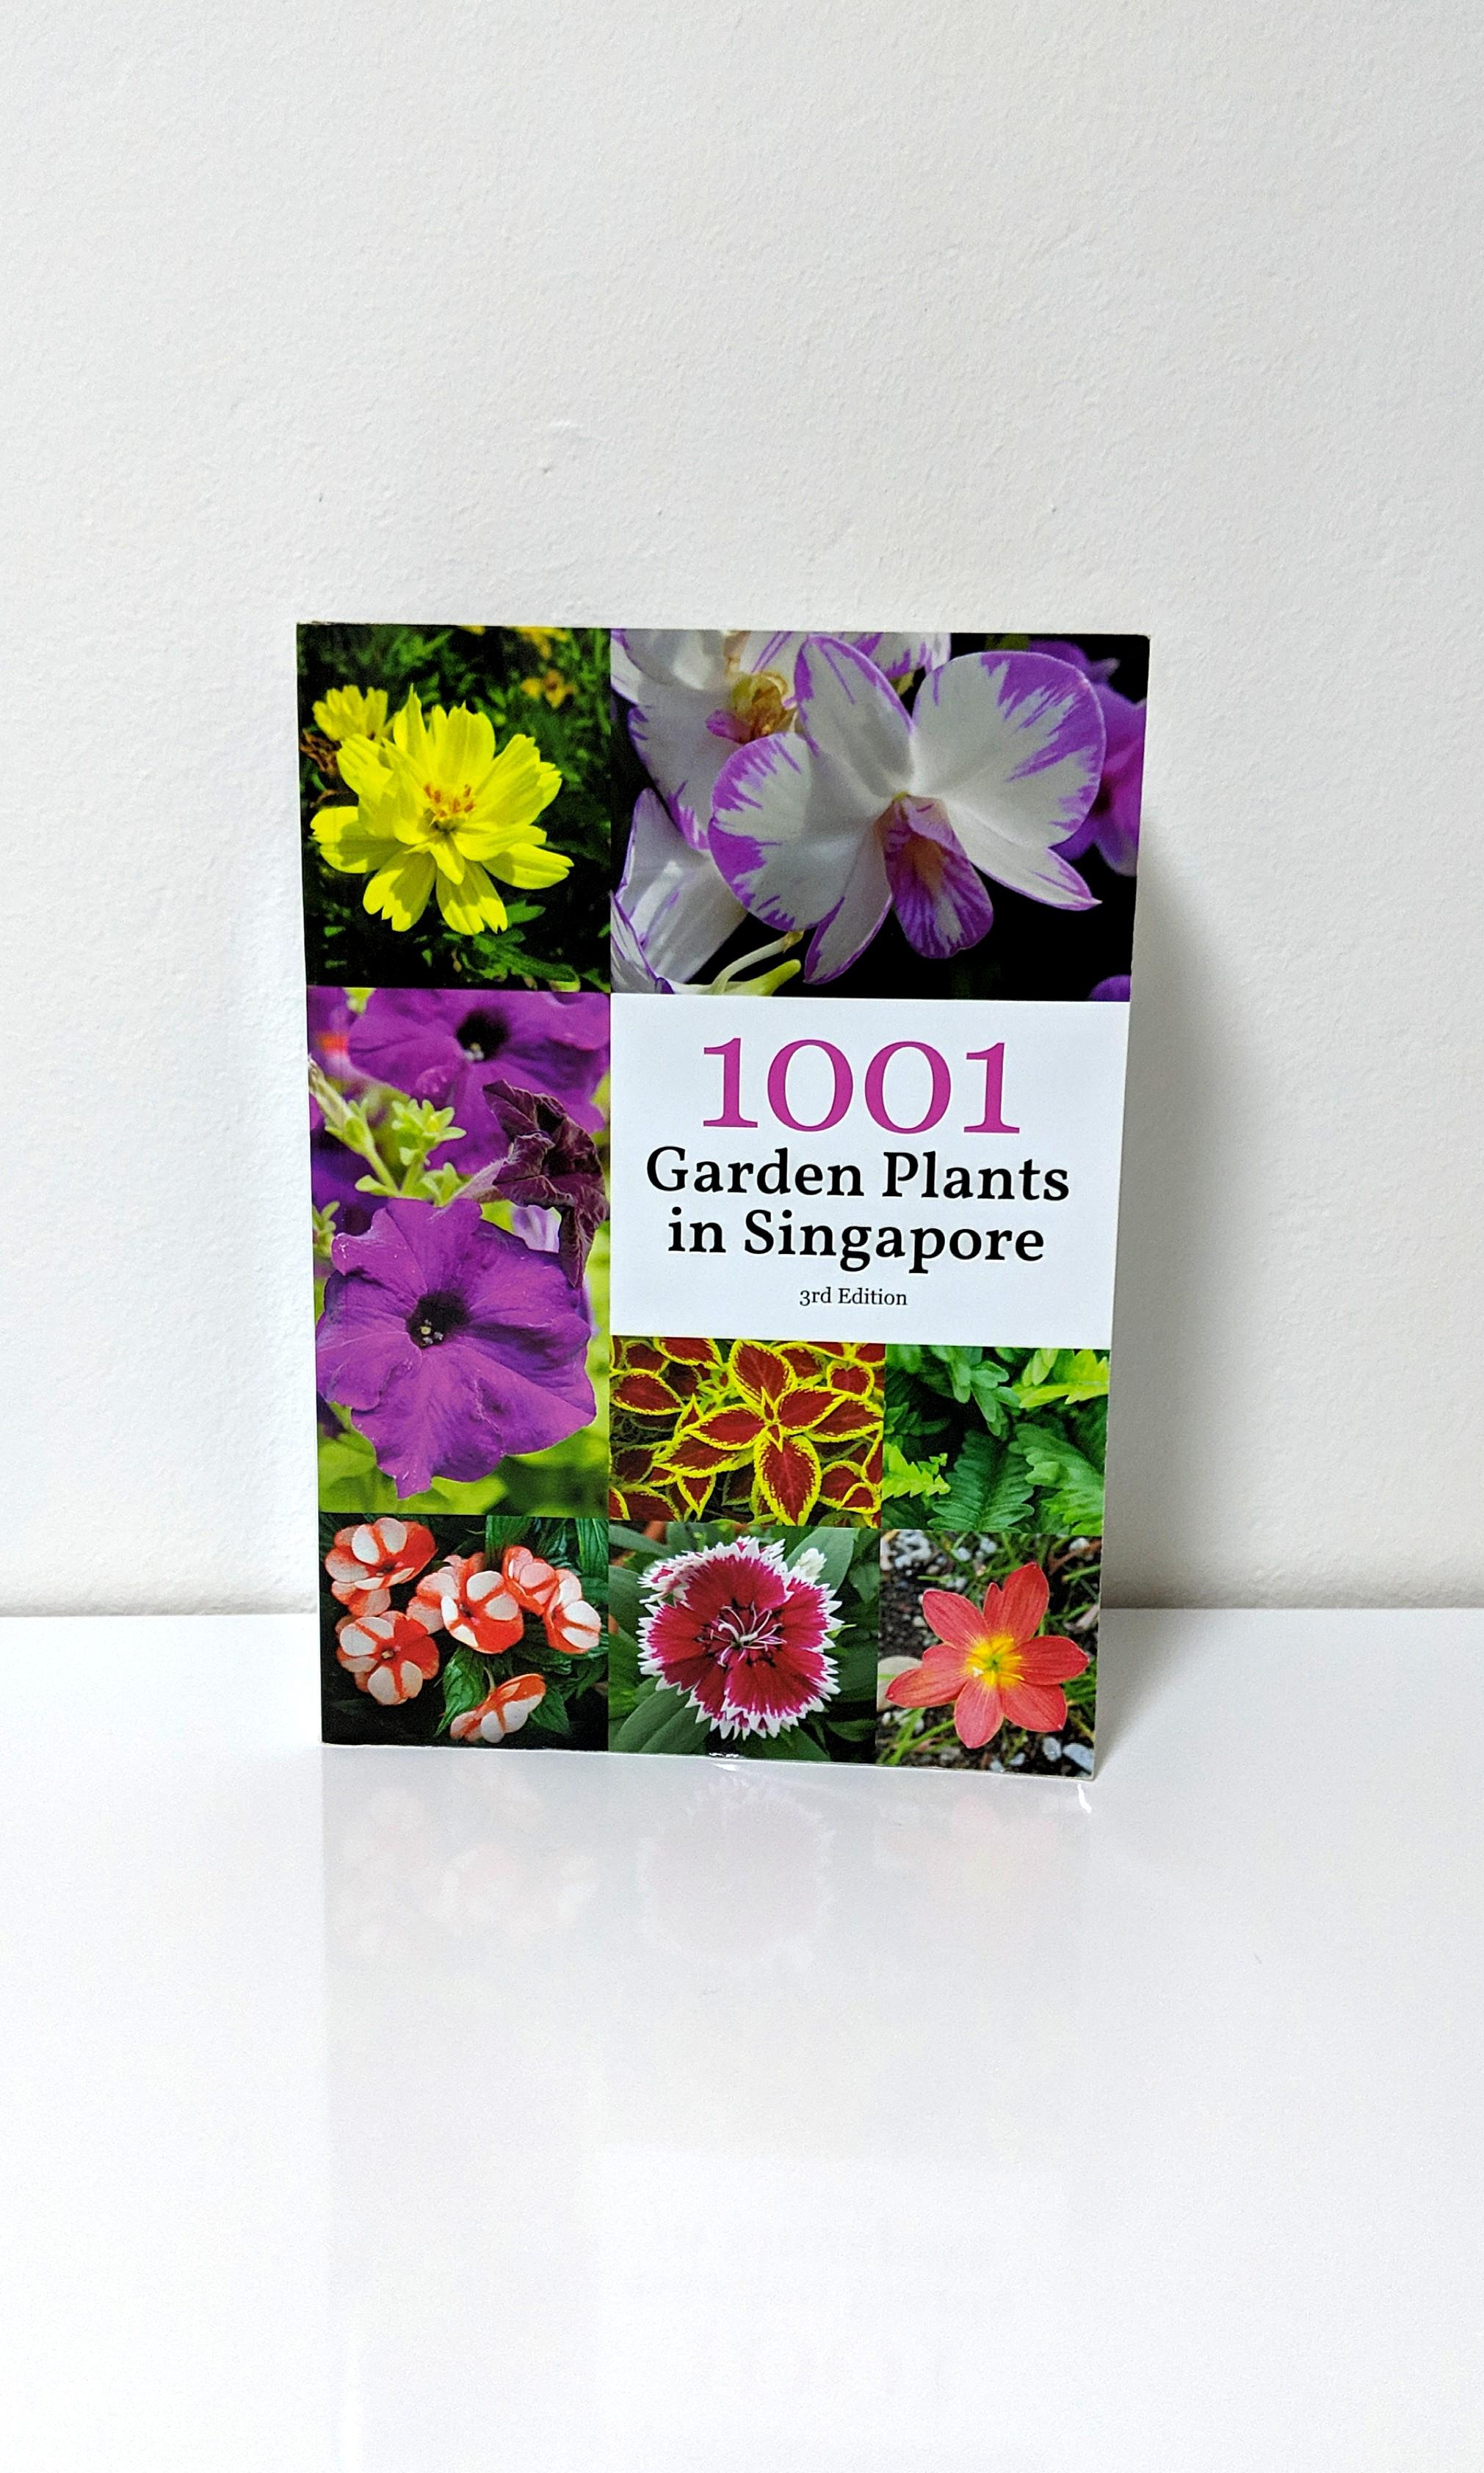 [NEW] Garden Plants In Singapore (3rd edition)